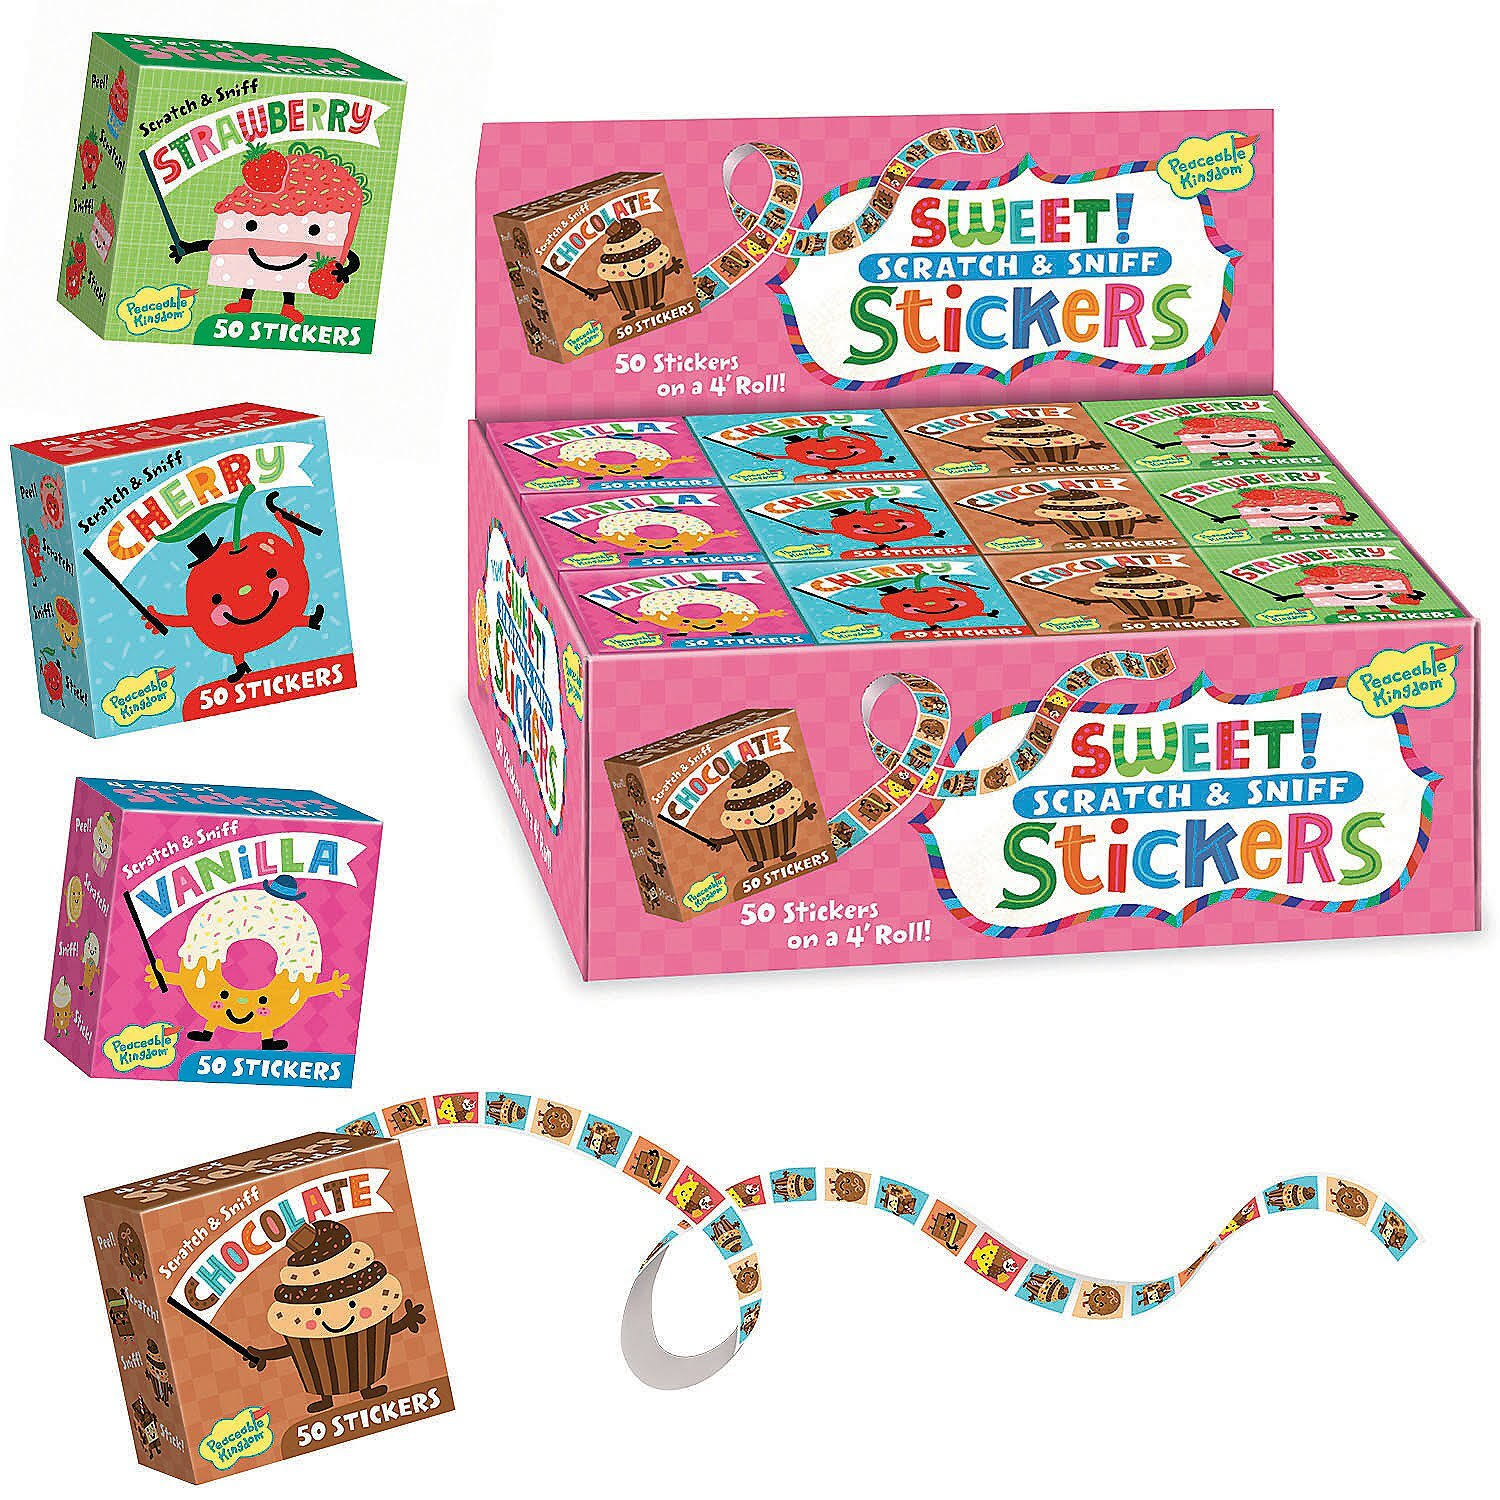 Peaceable Kingdom | Sweet! Scratch & Sniff Boxed Stickers Cherry